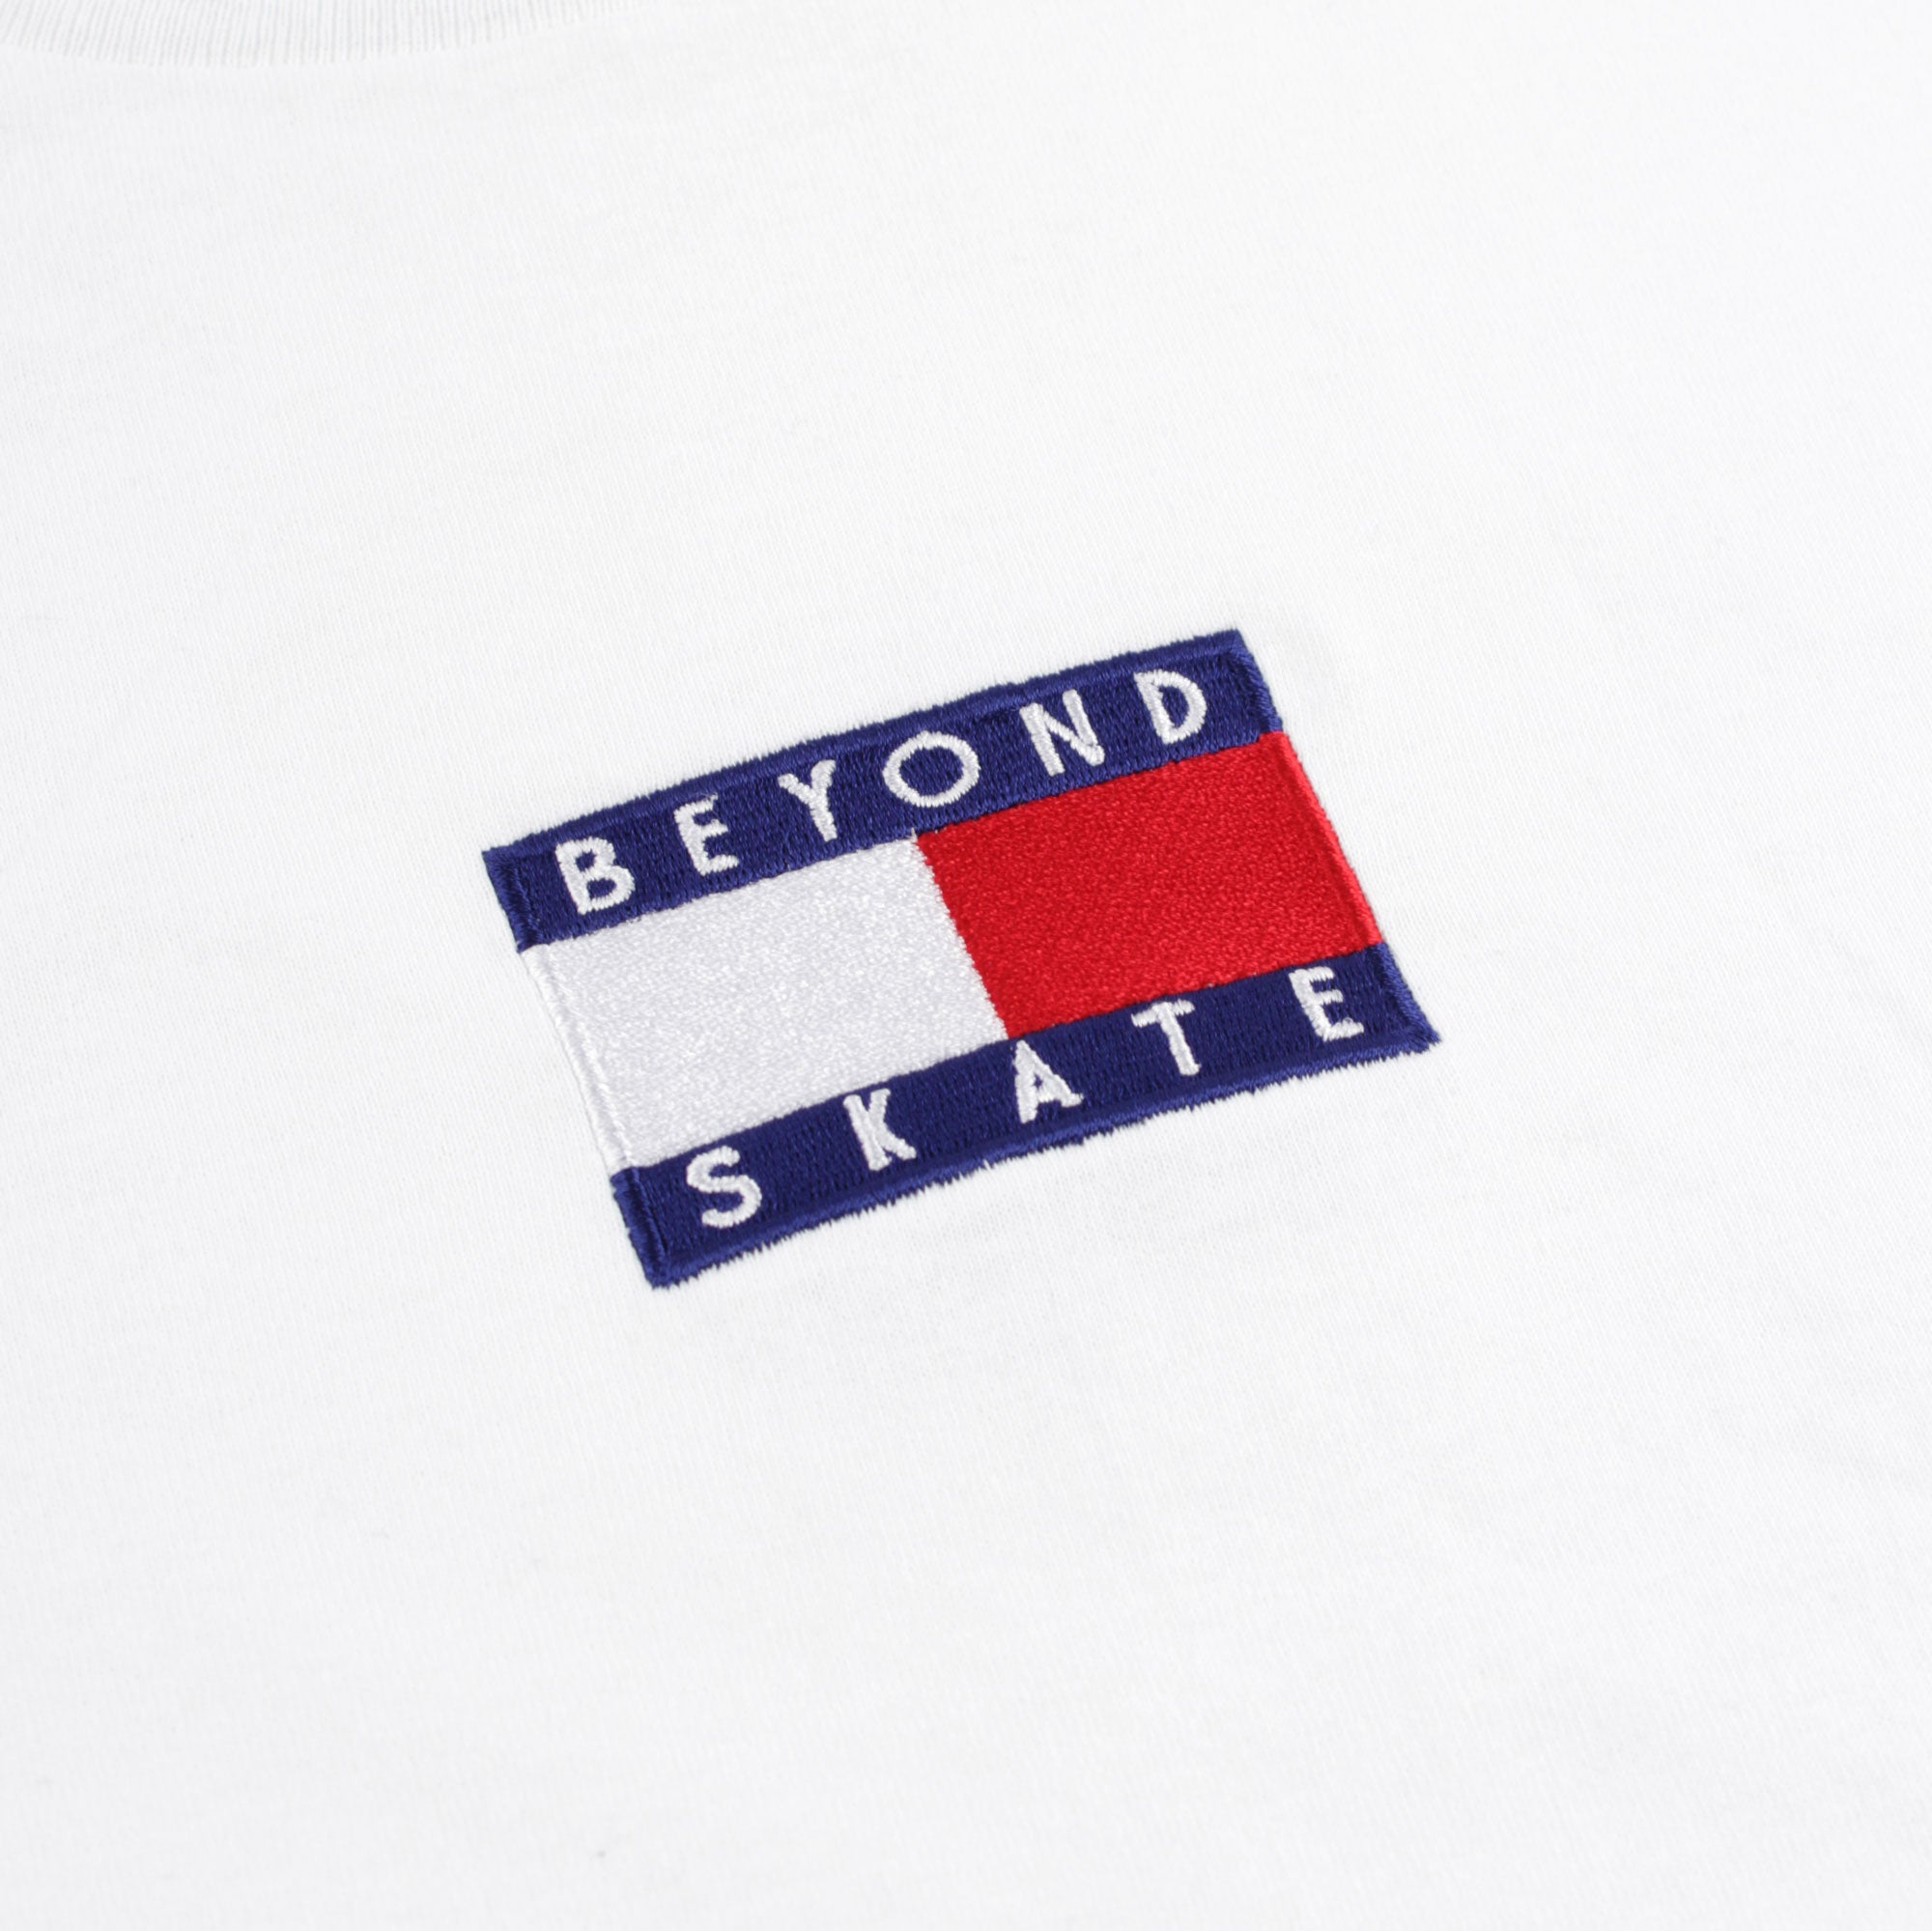 Beyond Tommy Tee Product Photo #2